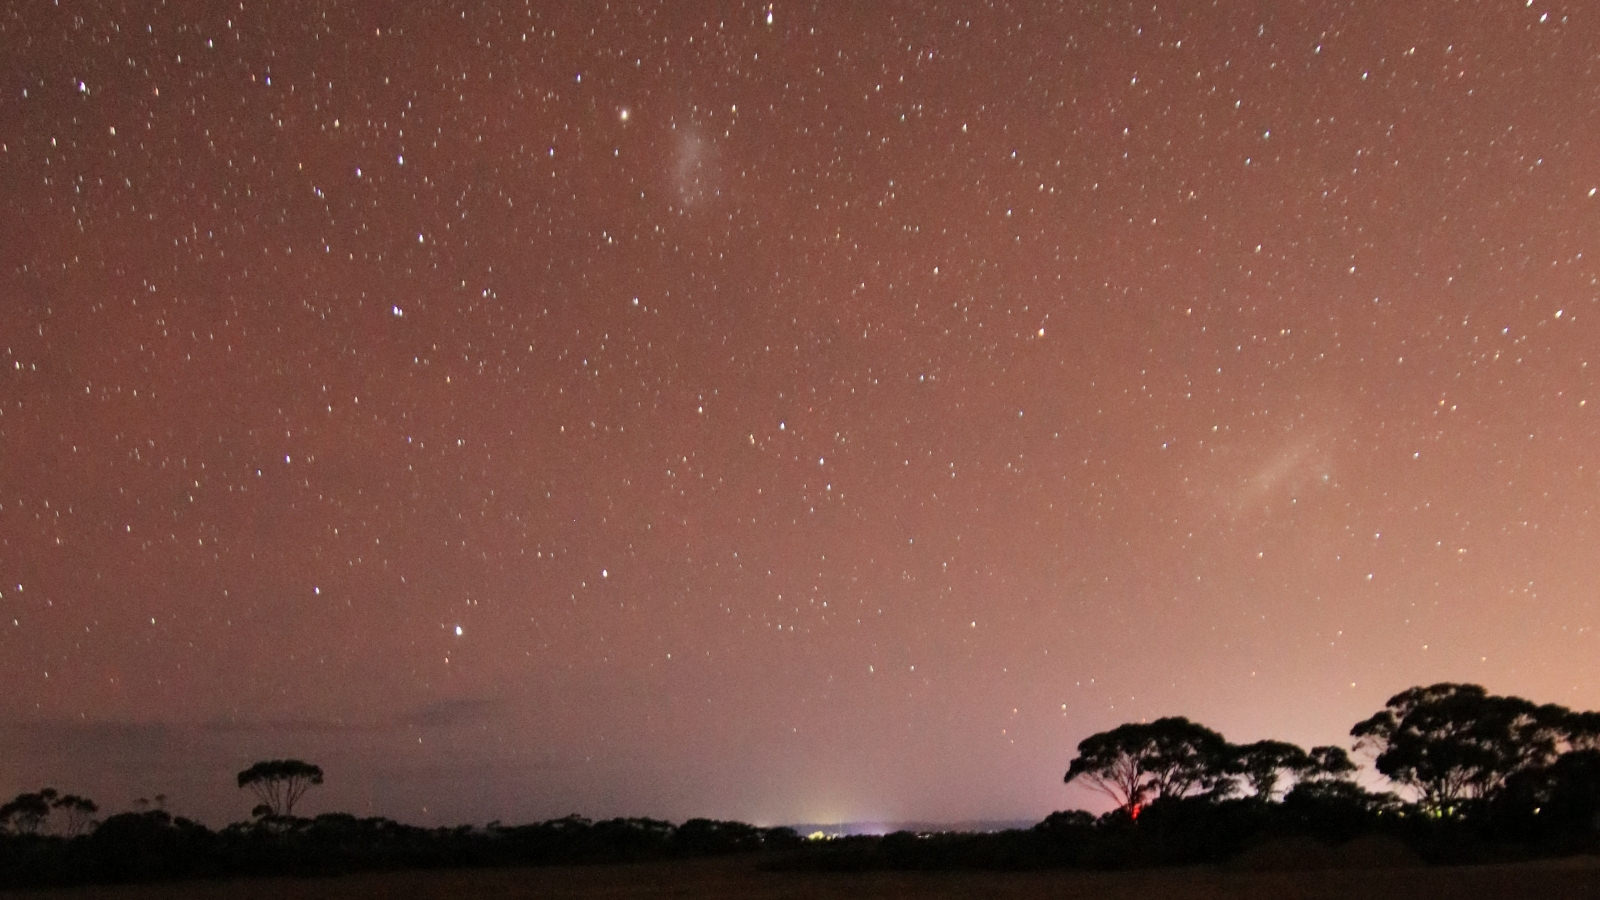 Large Magellanic Cloud nearly 200 000 light-years from